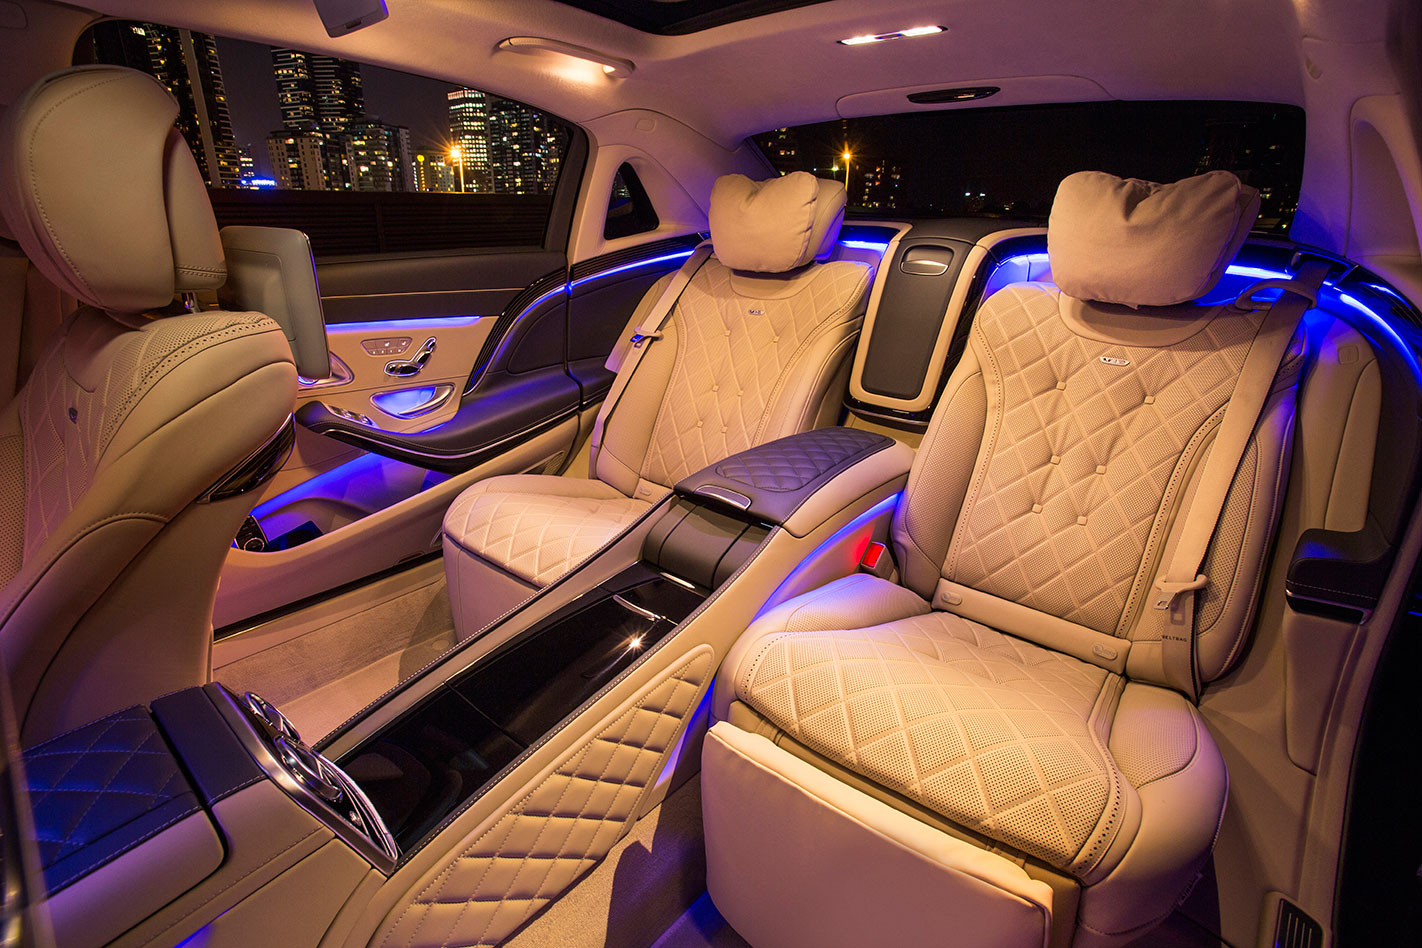 Mercedes -Maybach -S600-rear -interior